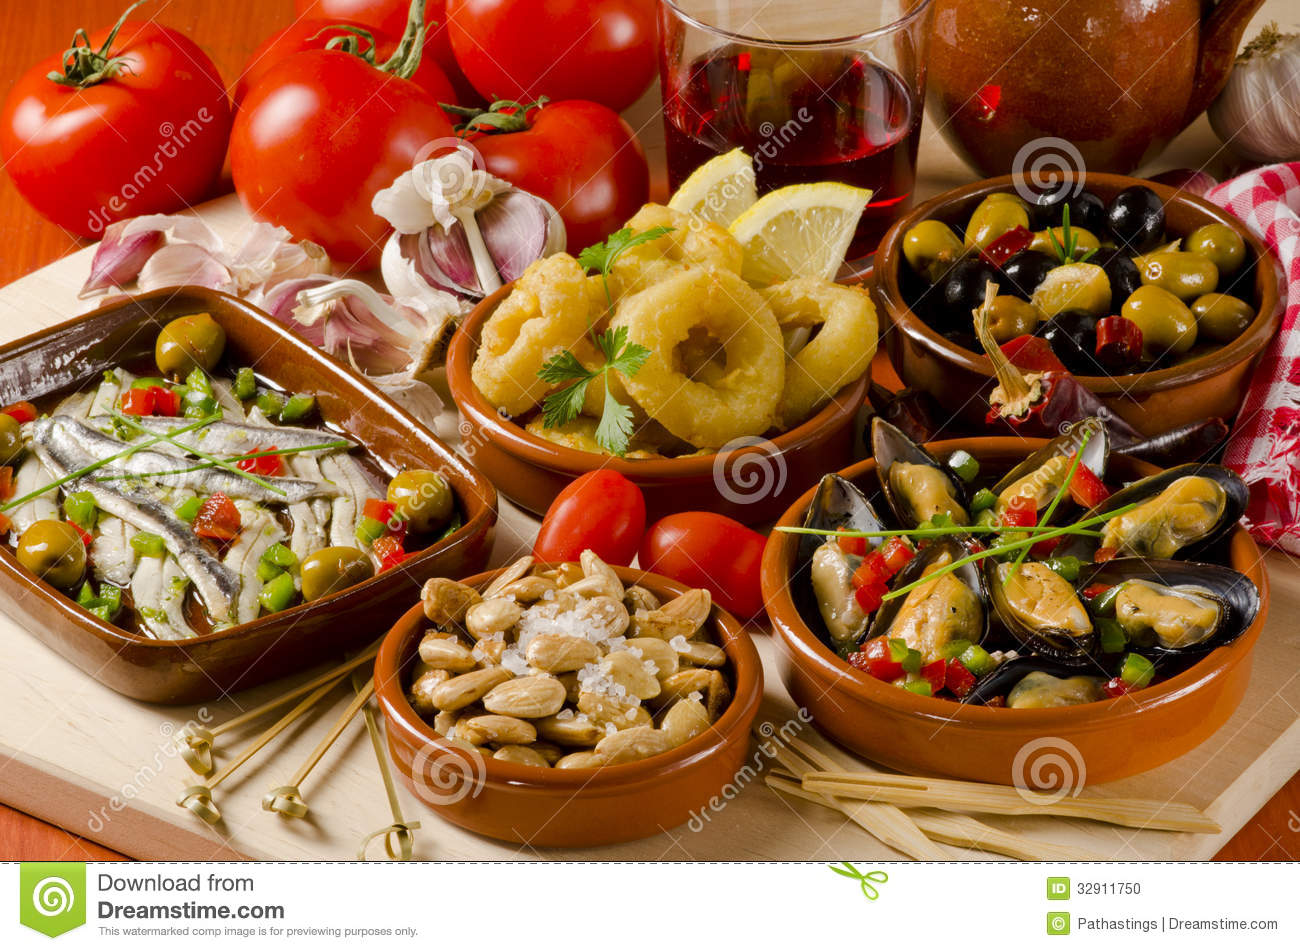 cuisine espagnole tapas assortis des plats en c ramique photo stock image 32911750. Black Bedroom Furniture Sets. Home Design Ideas